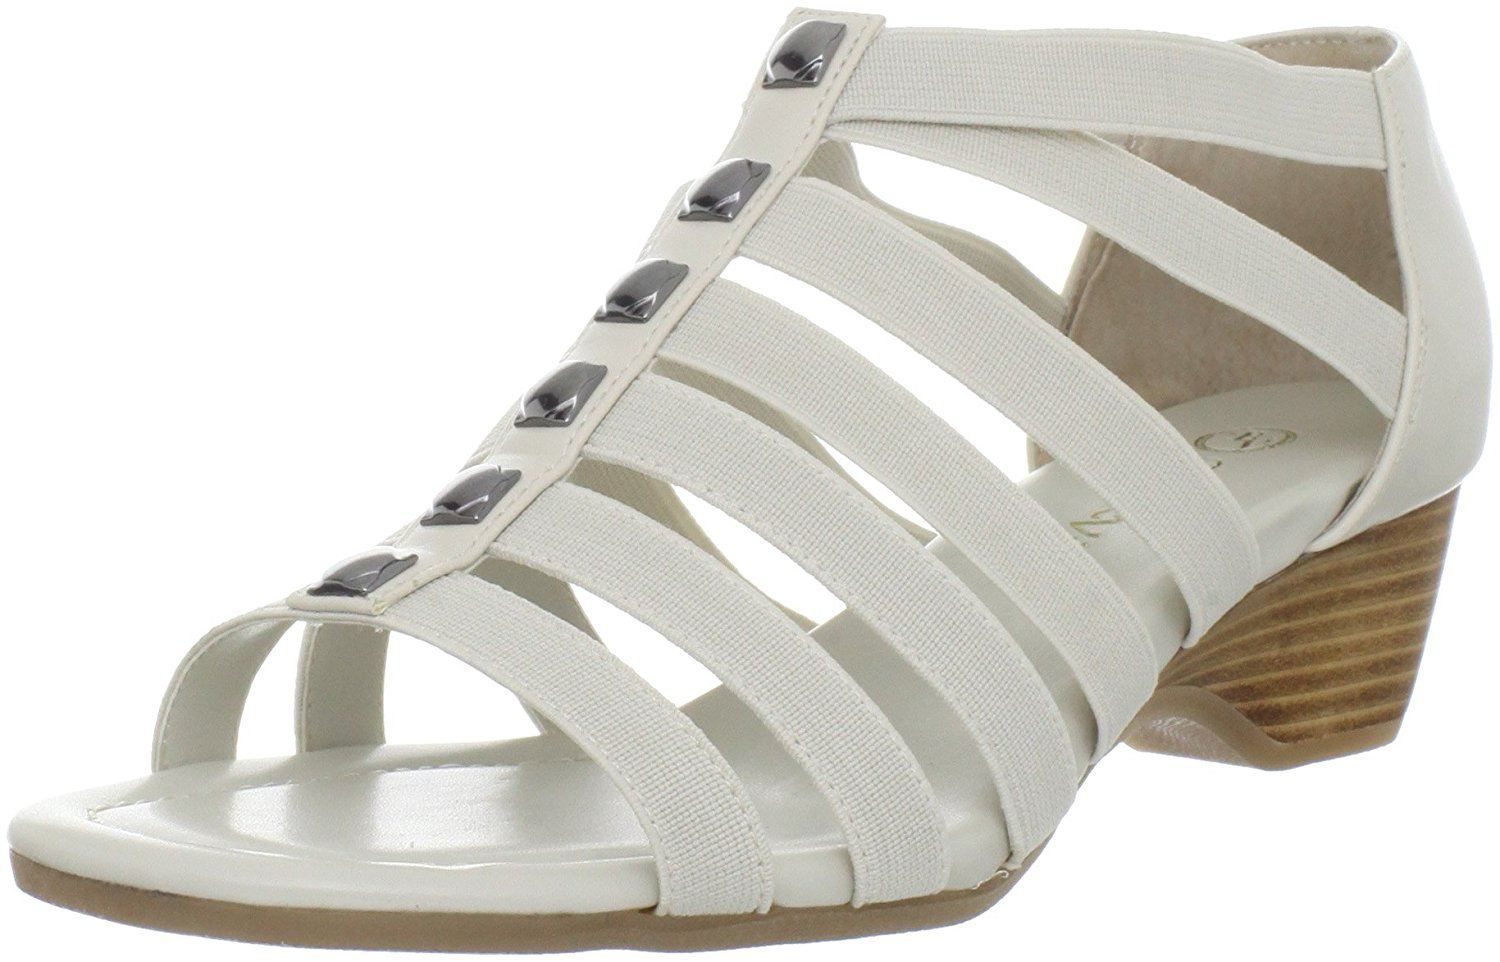 Bella Vita Womens paula11 Fabric Open Toe Casual Strappy Sandals by Bella Vita